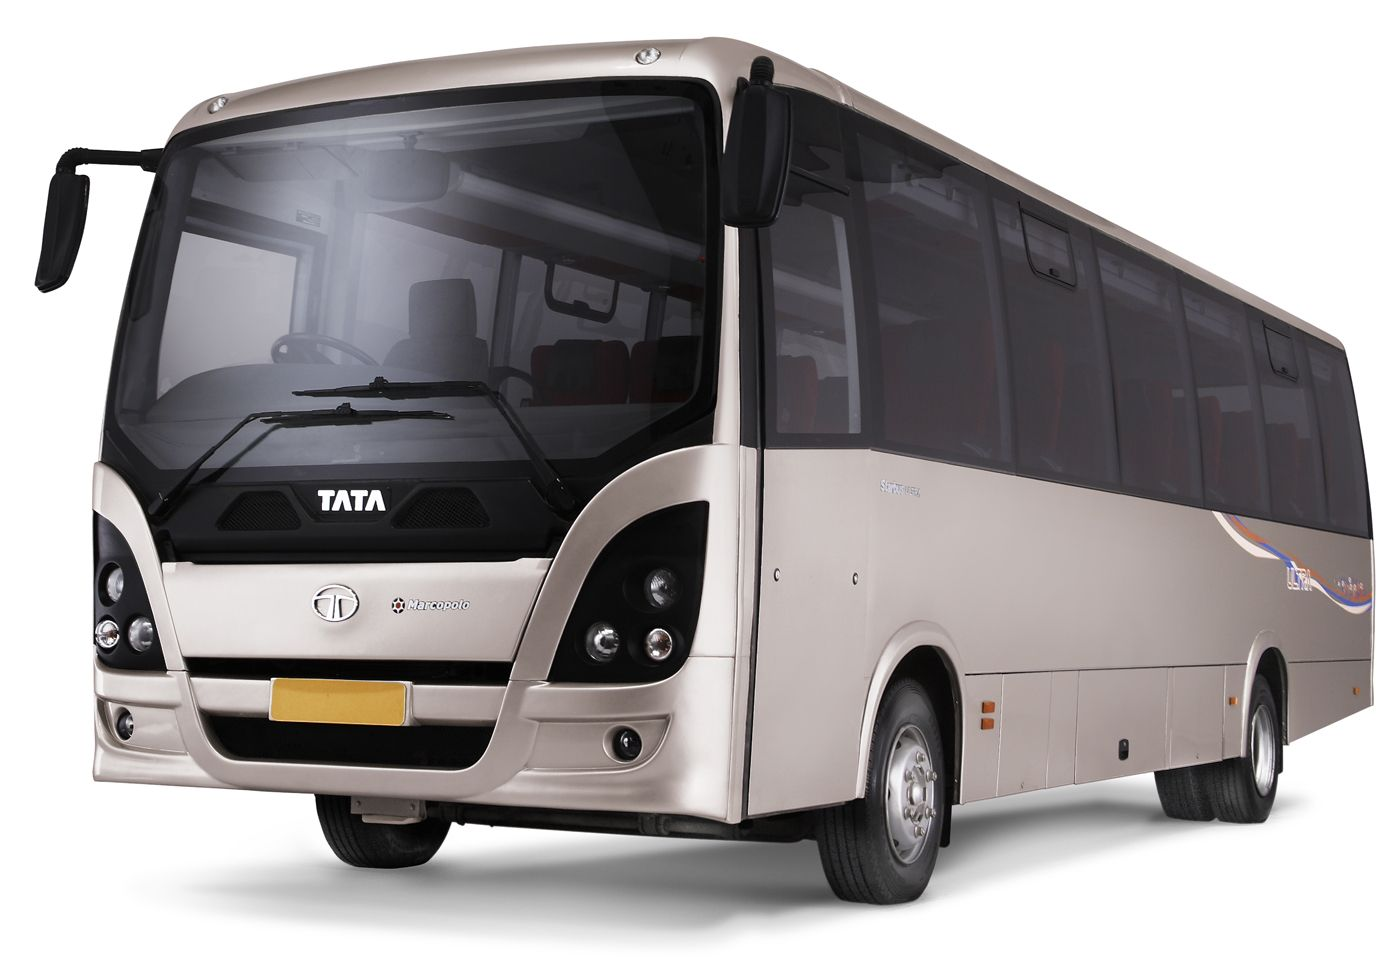 Bus moves offering bus charter and coach hire services to schools trip, businesses tour and ...